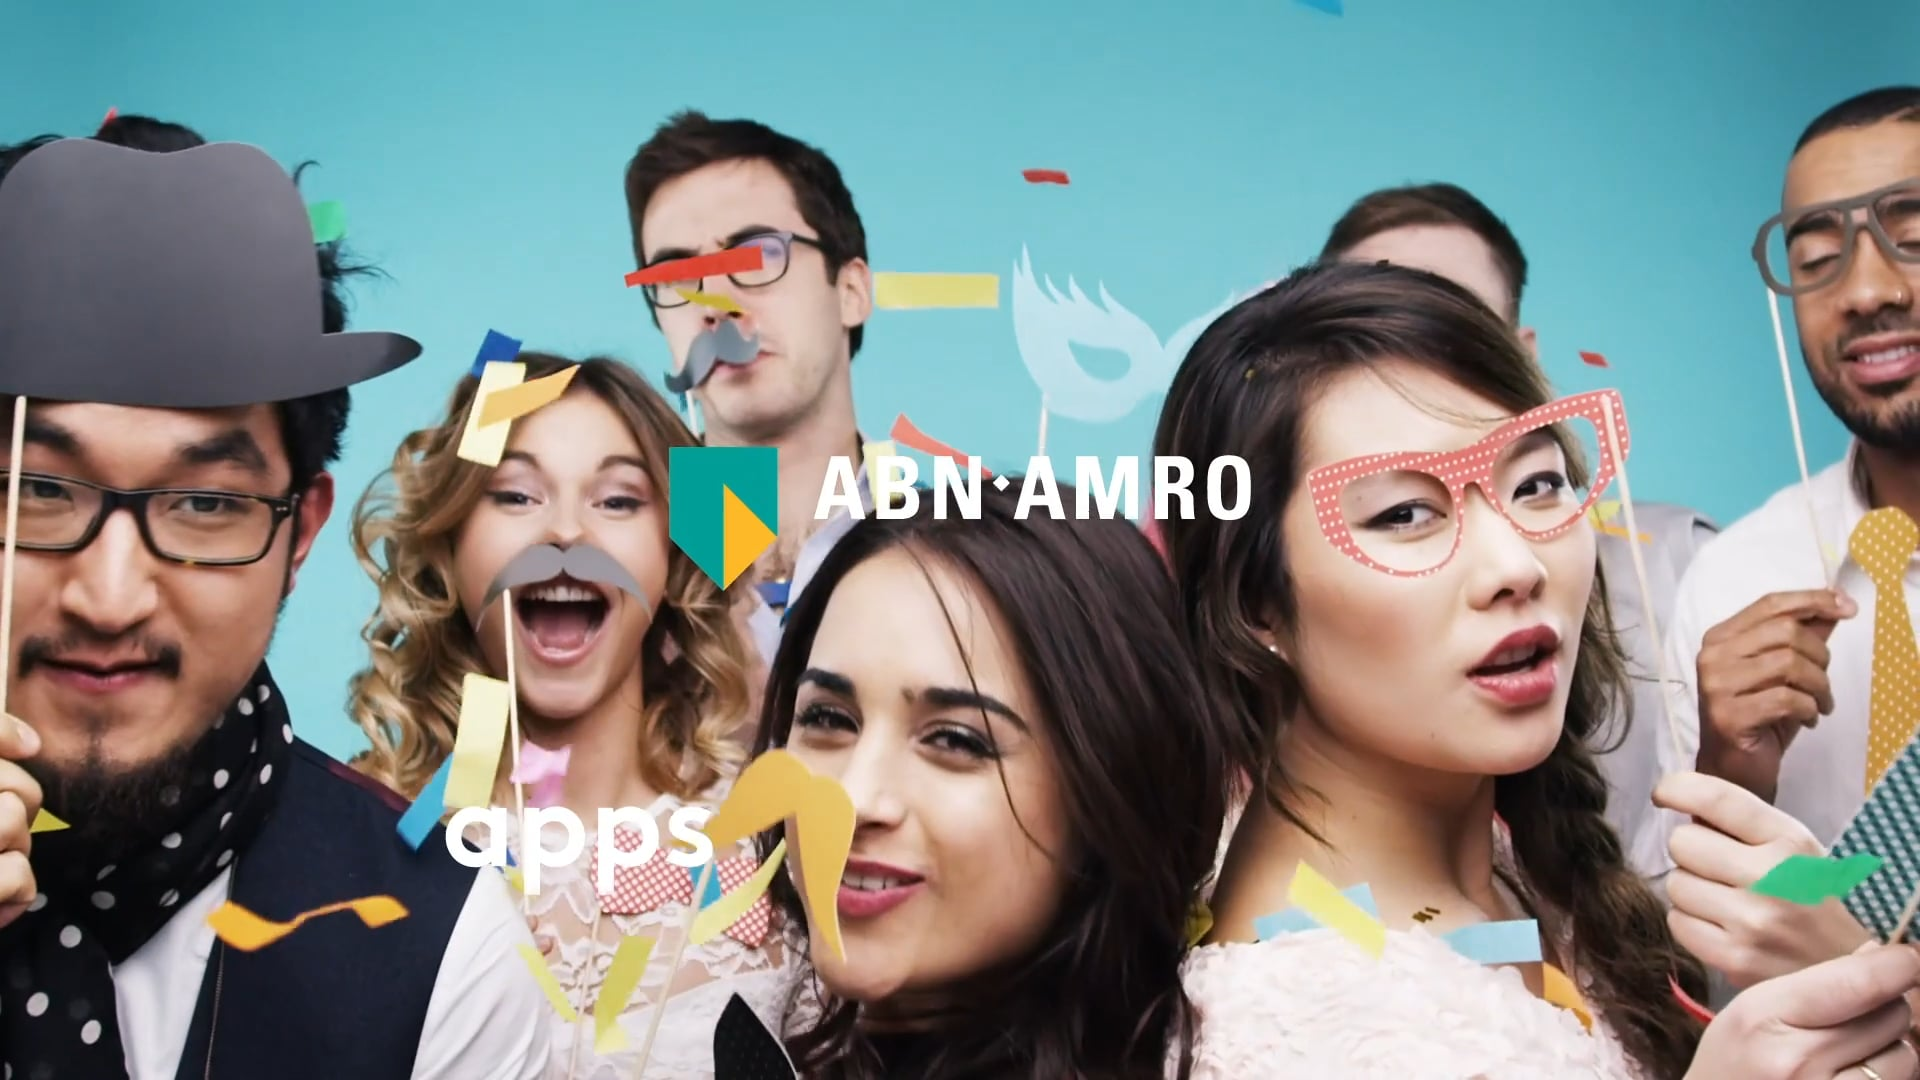 ABNAMRO Video